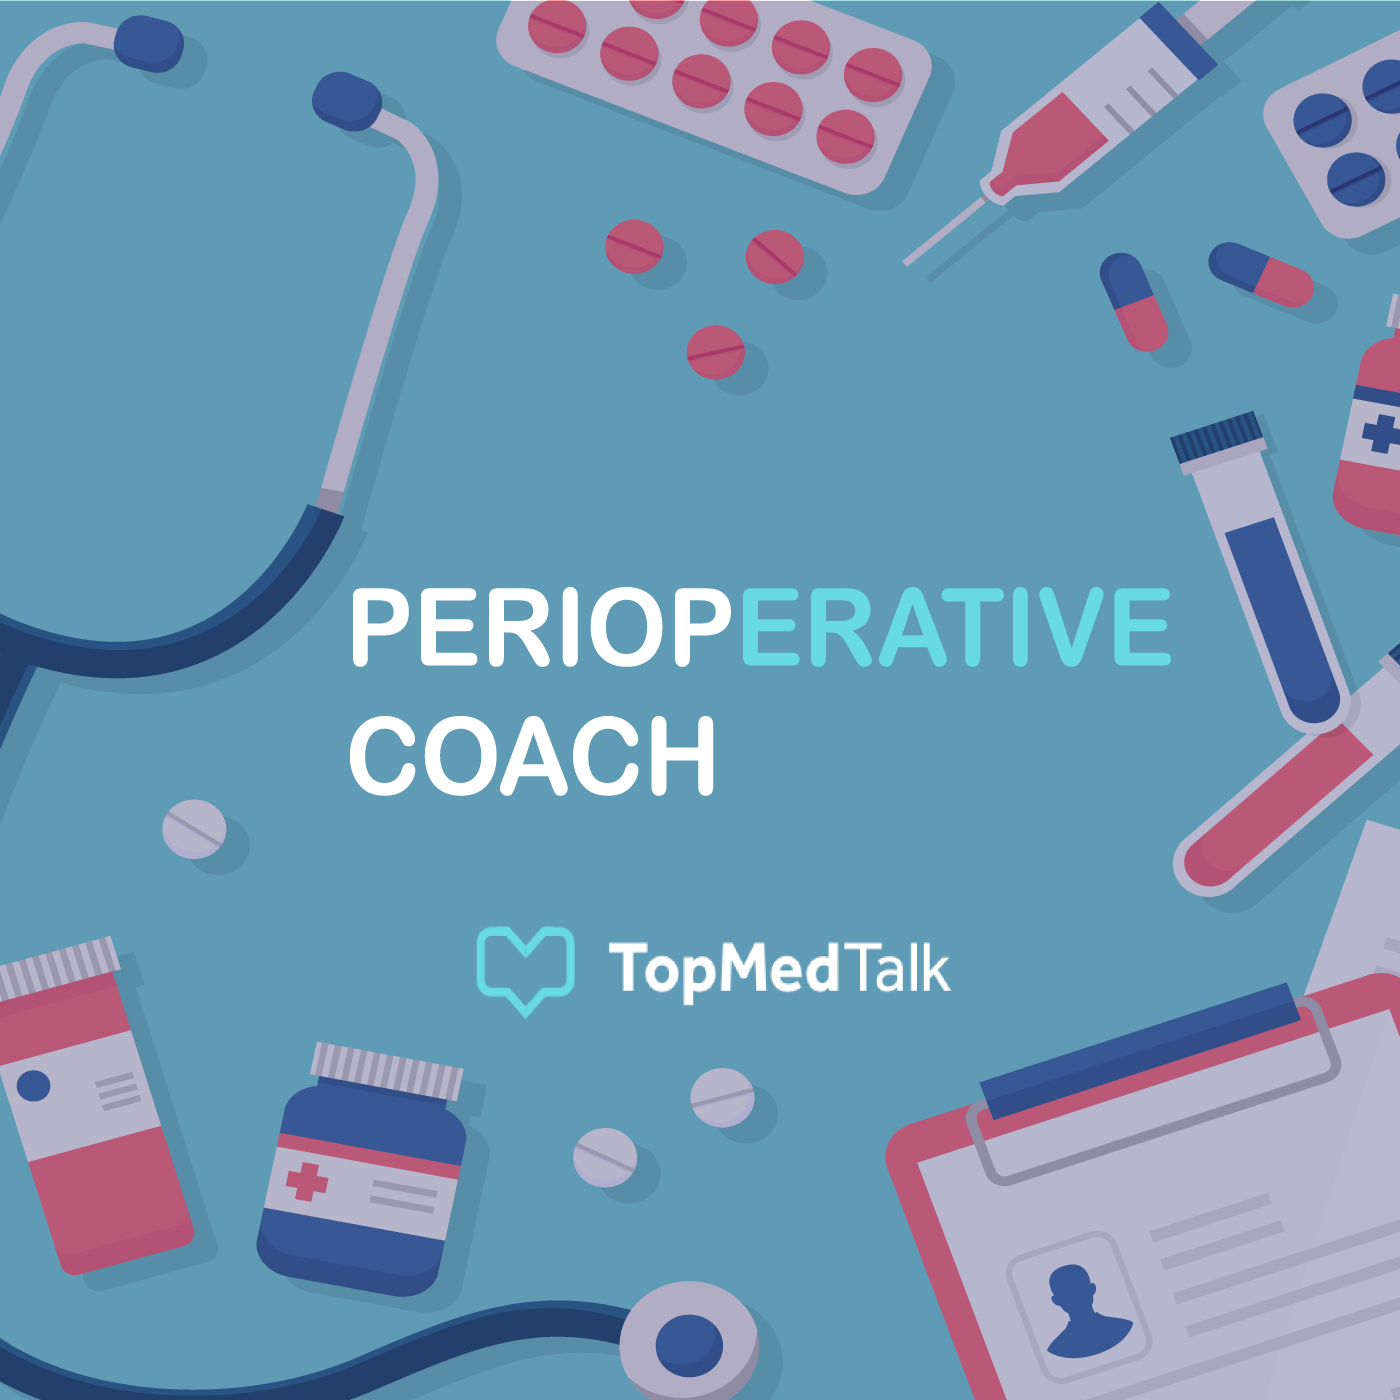 Periop Coach 2.02 | ERAS what's the 'secret sauce'?